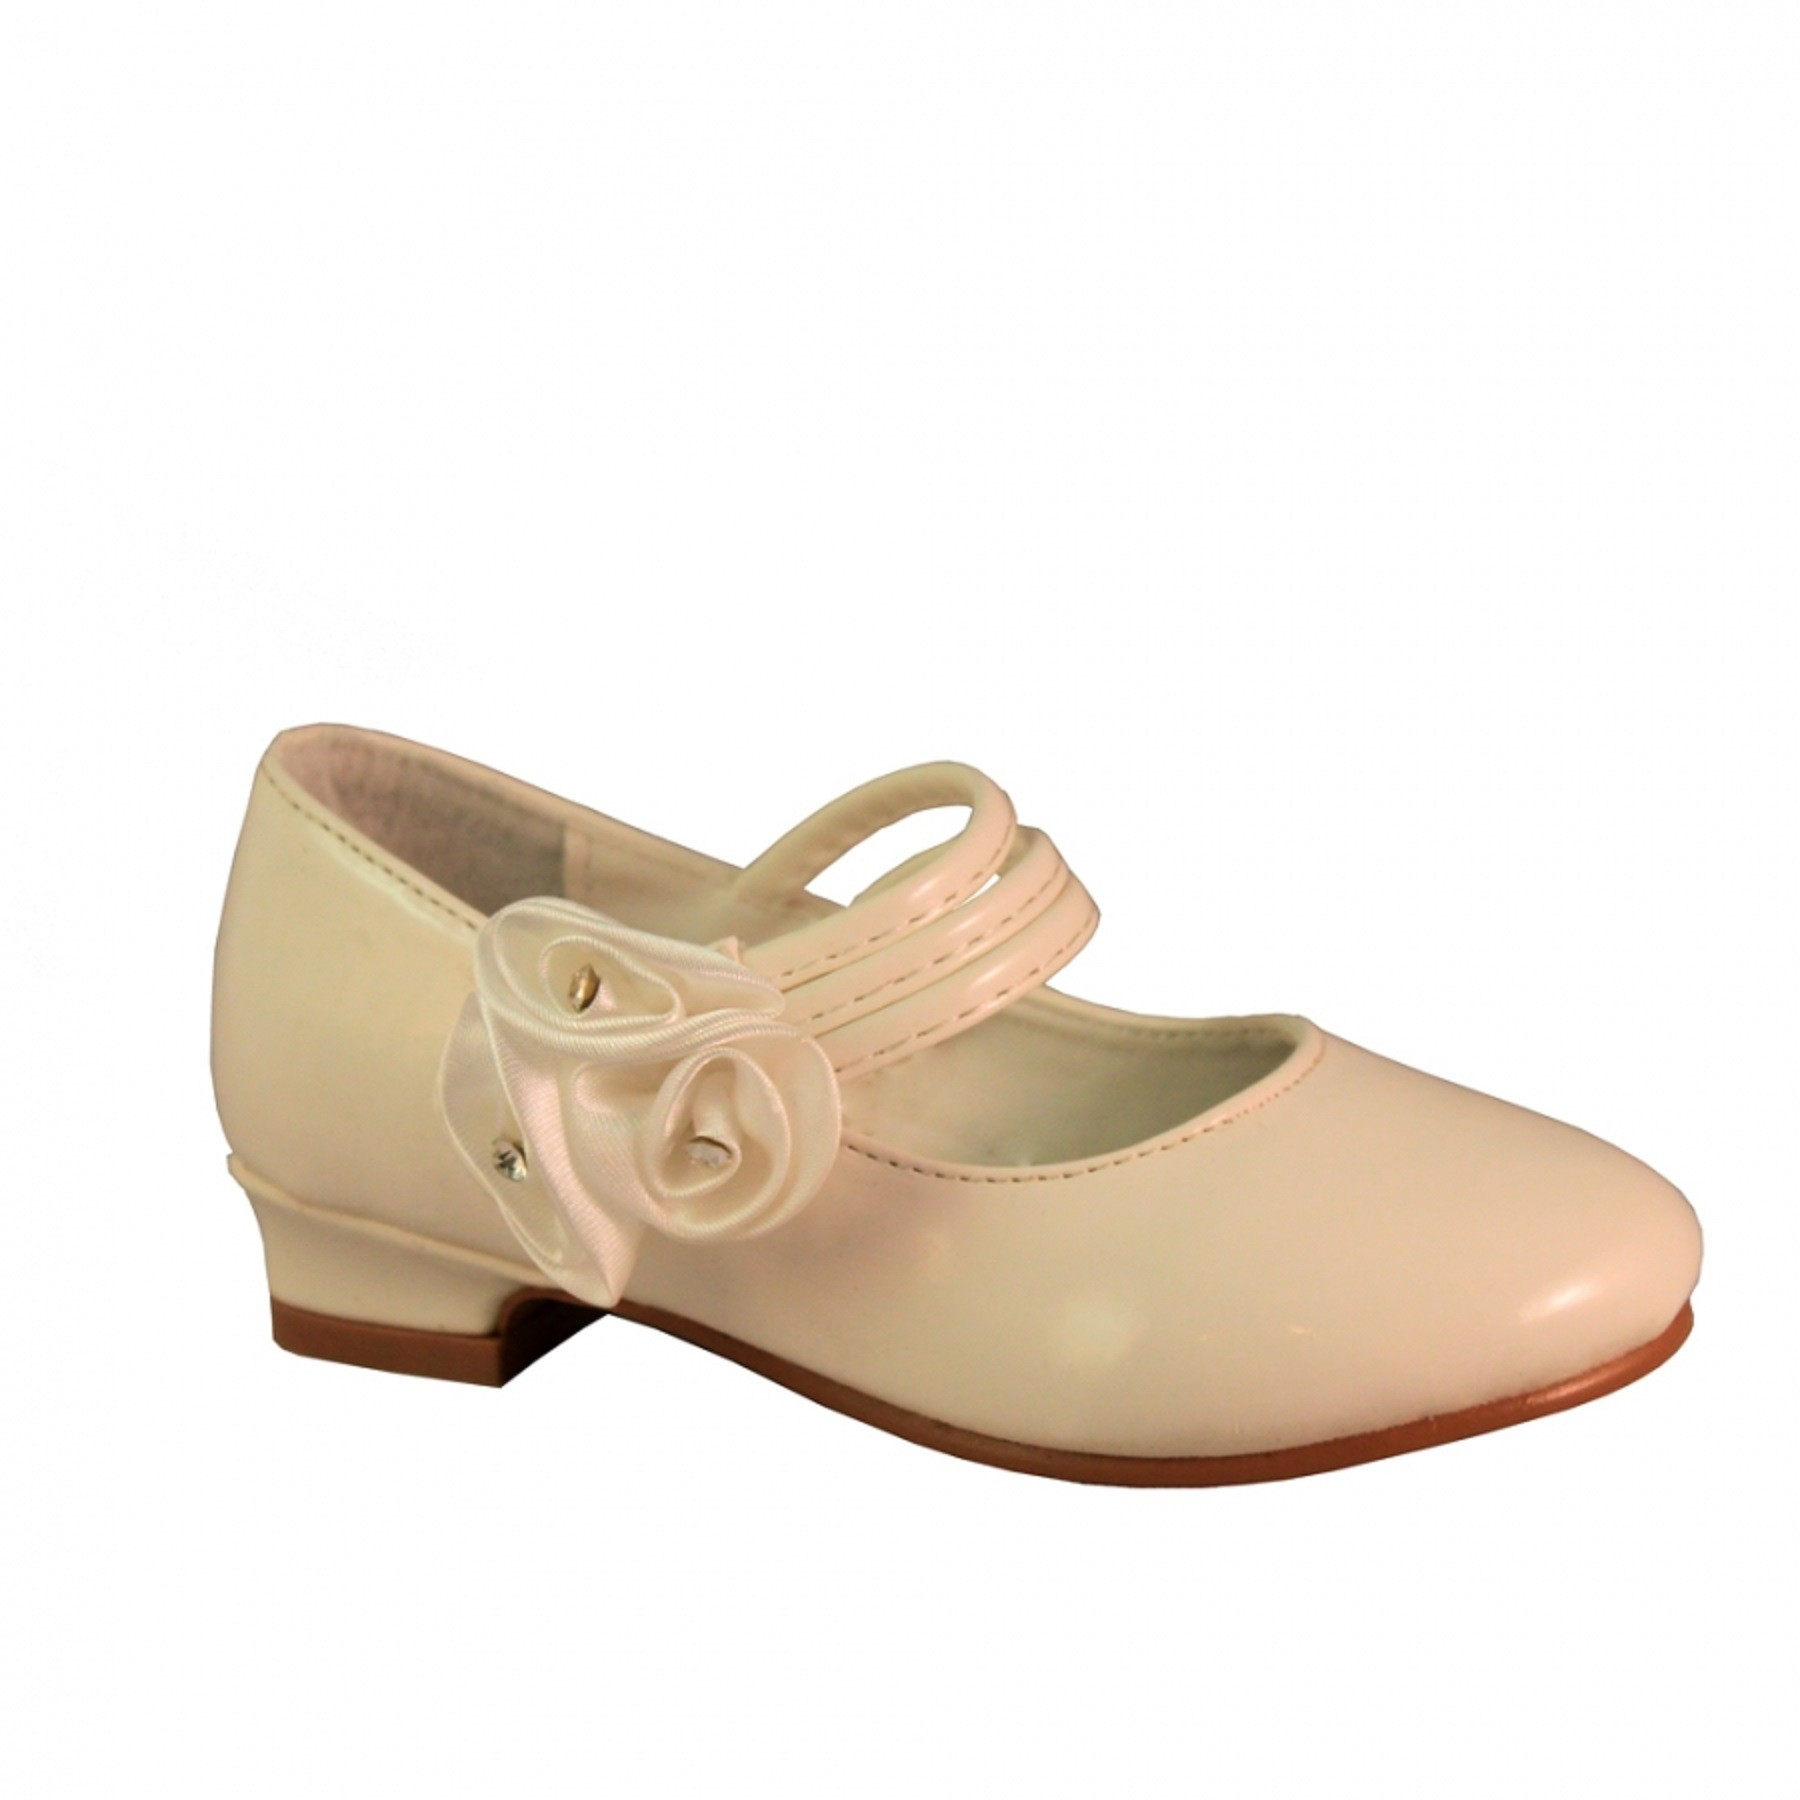 Wedding Communion Shoes communion shoes christening outfits gowns baptism wear girls ivory flower girl 3645ia